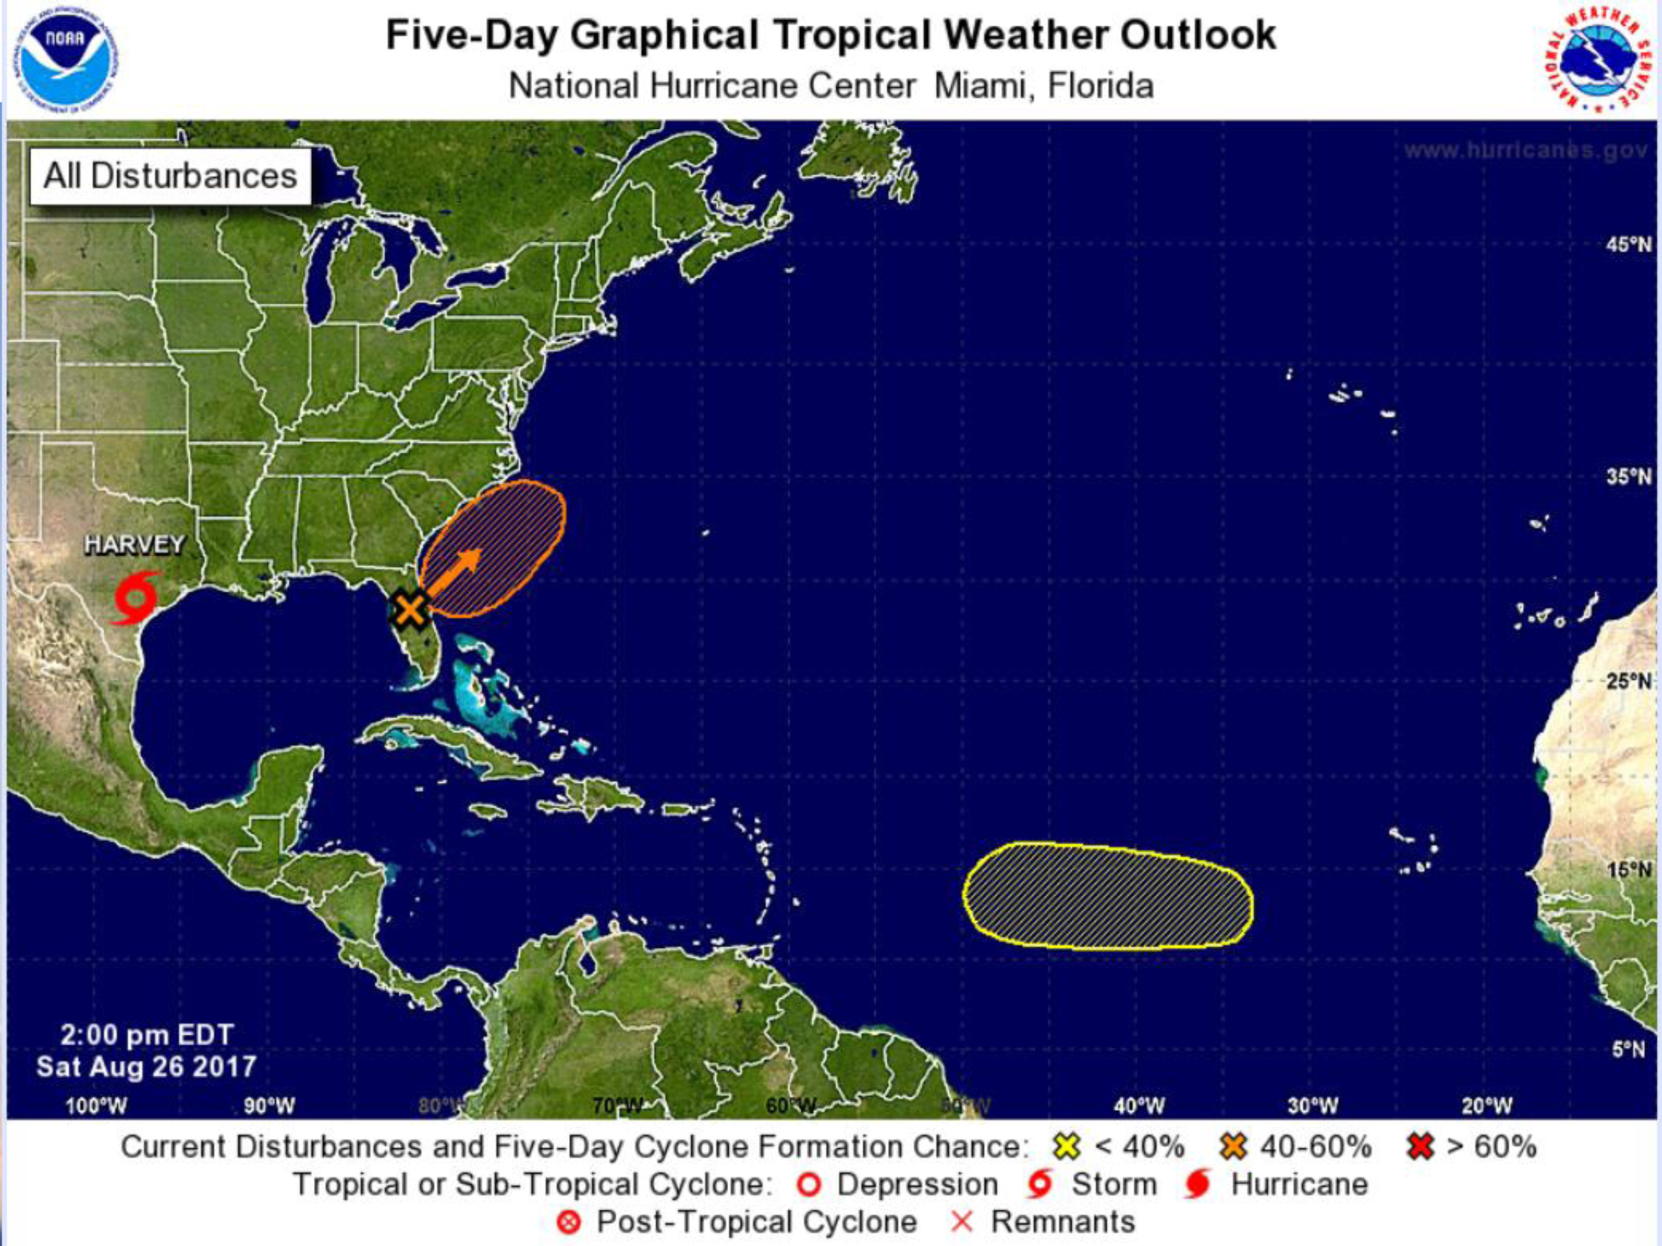 Meteorologists Keeping an Eye on Potential Tropical System